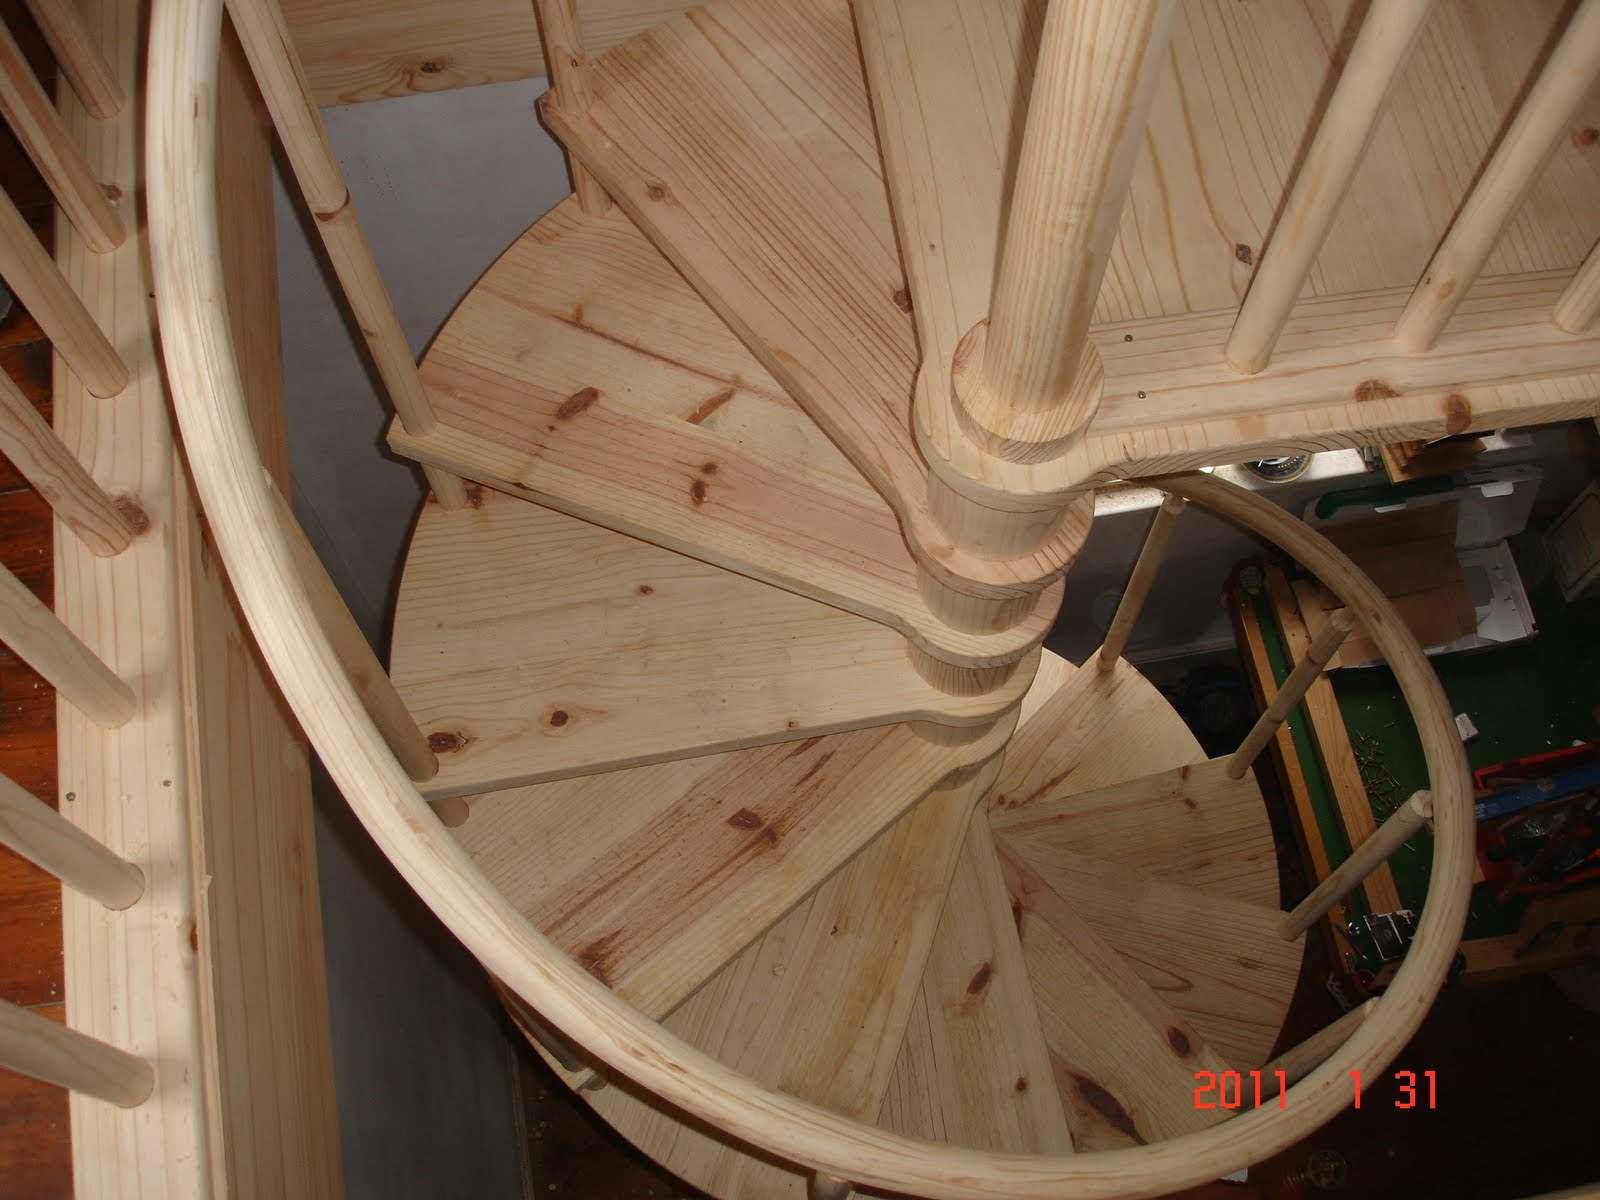 Price Per Tread Is R 1200,00 Excl. The Balustrade On The First Floor